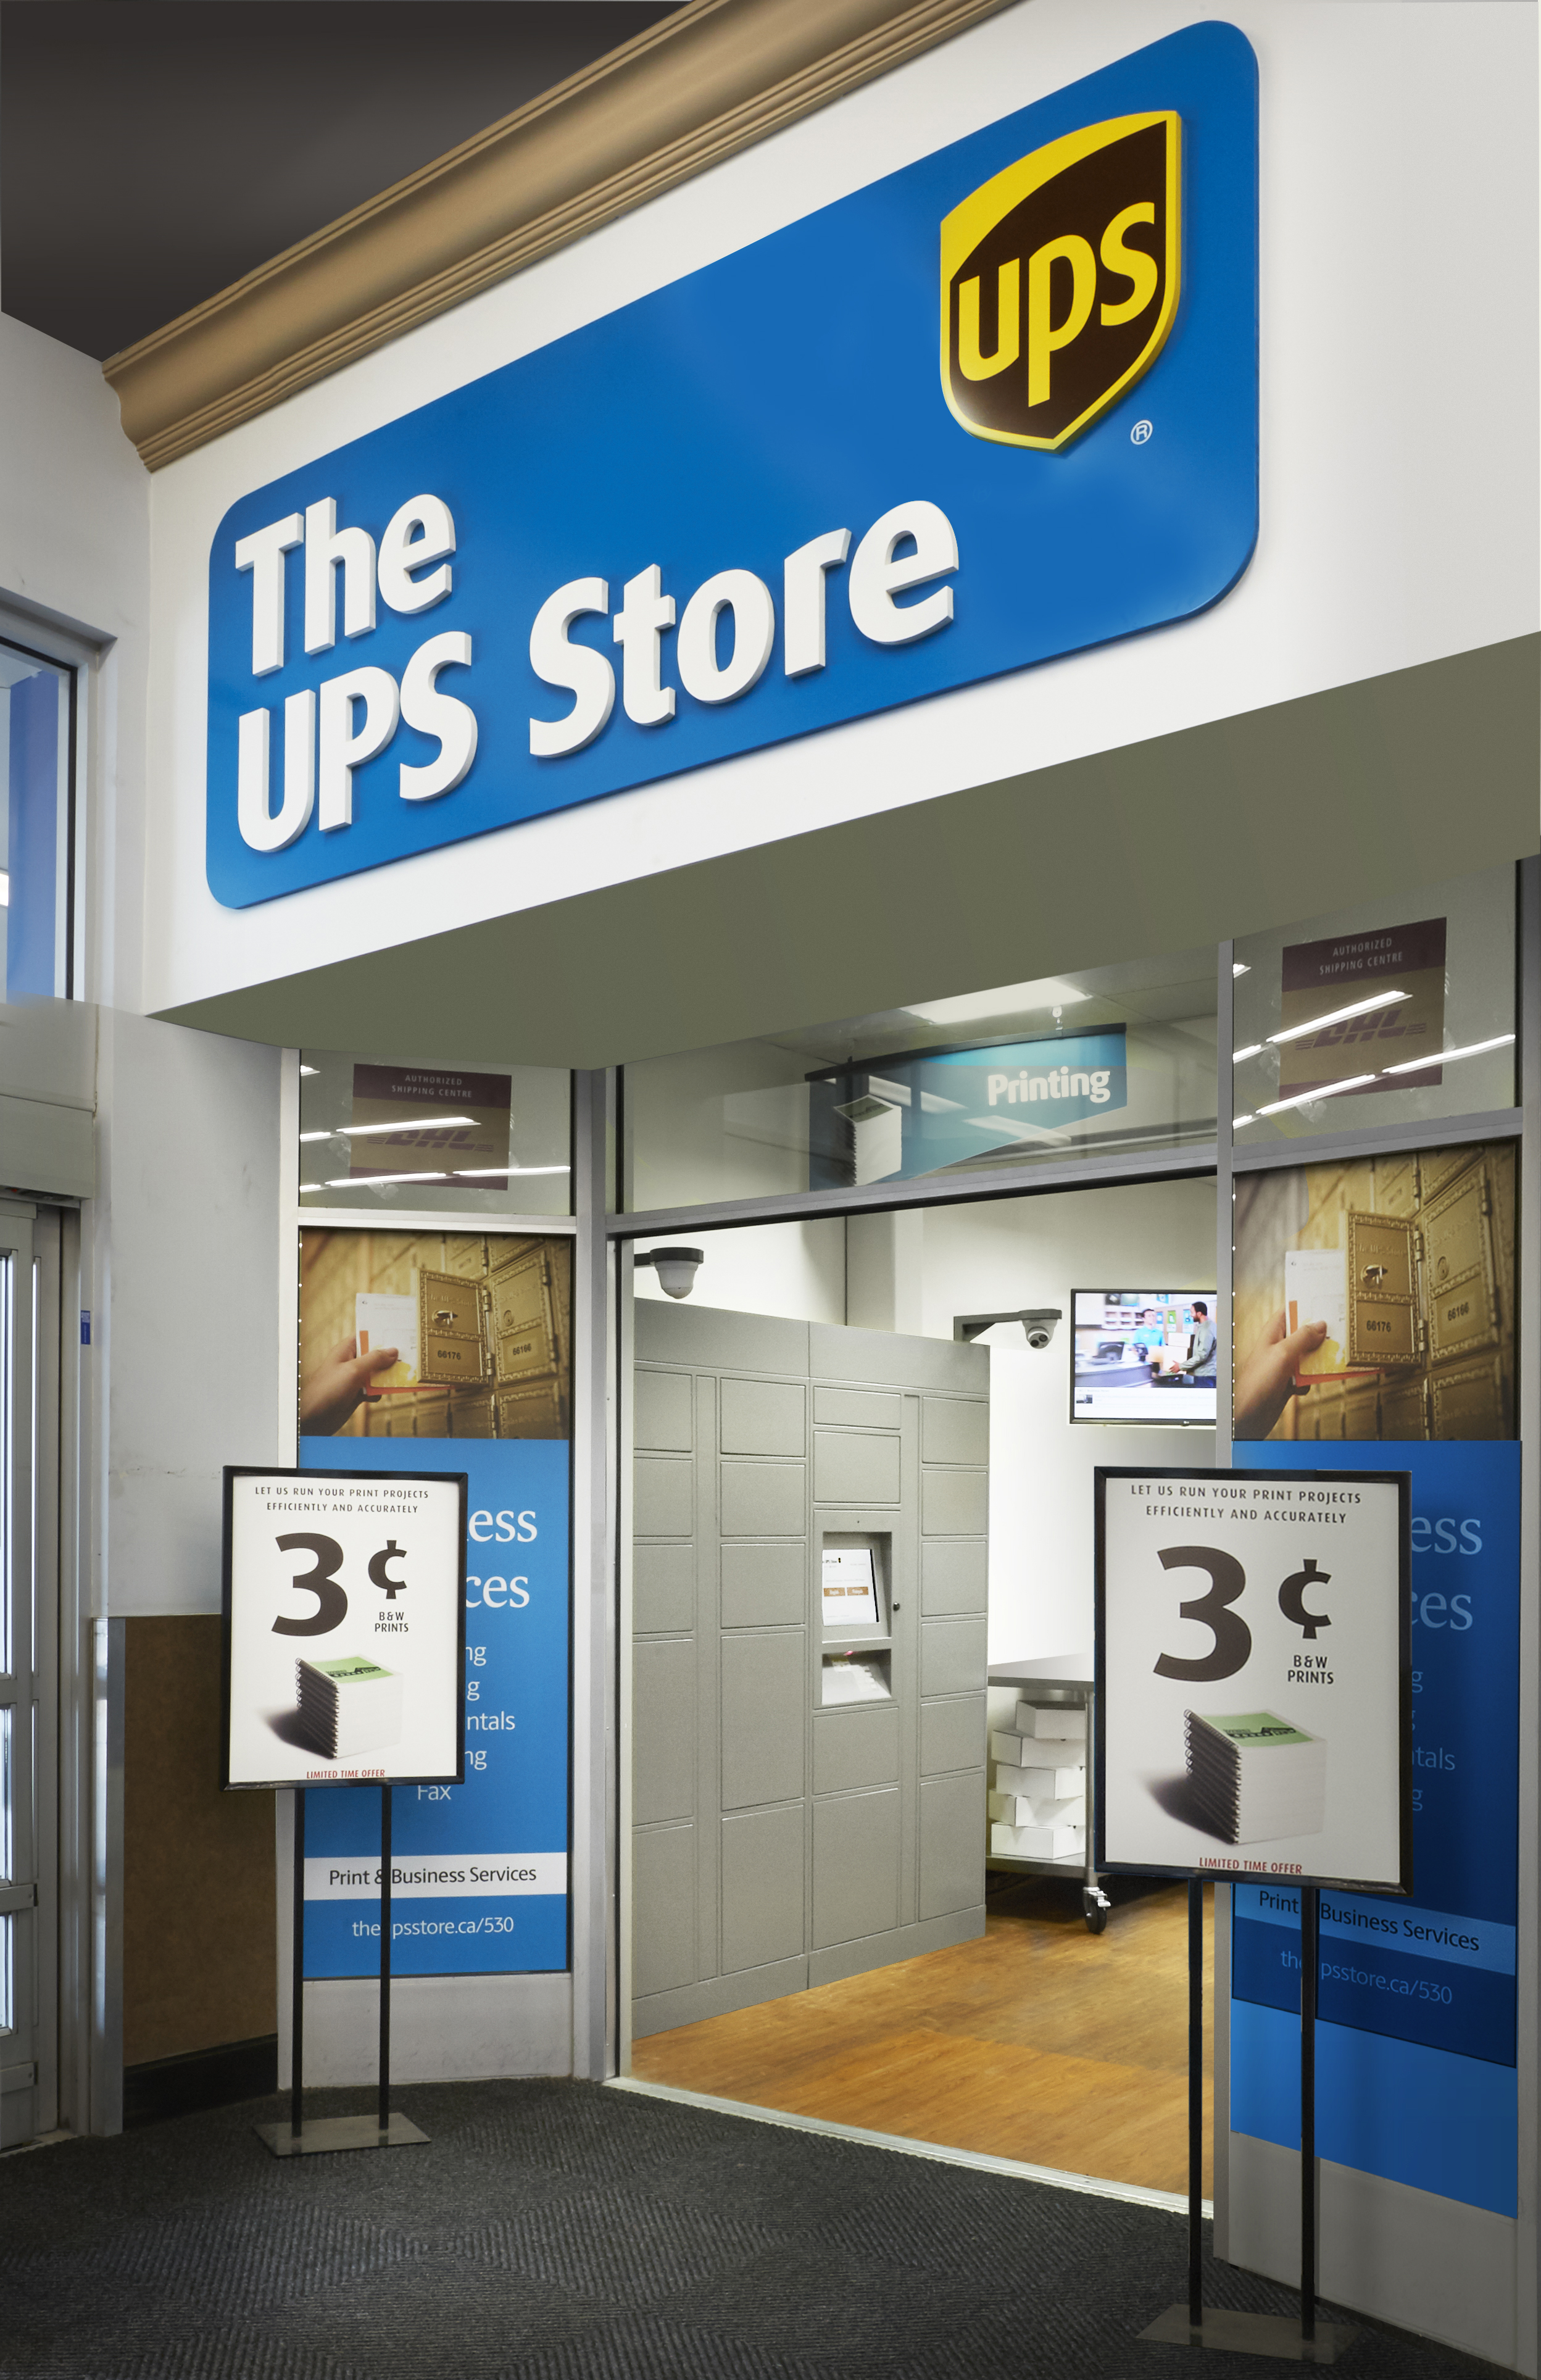 Parcel Lockers a Big Benefit to Business